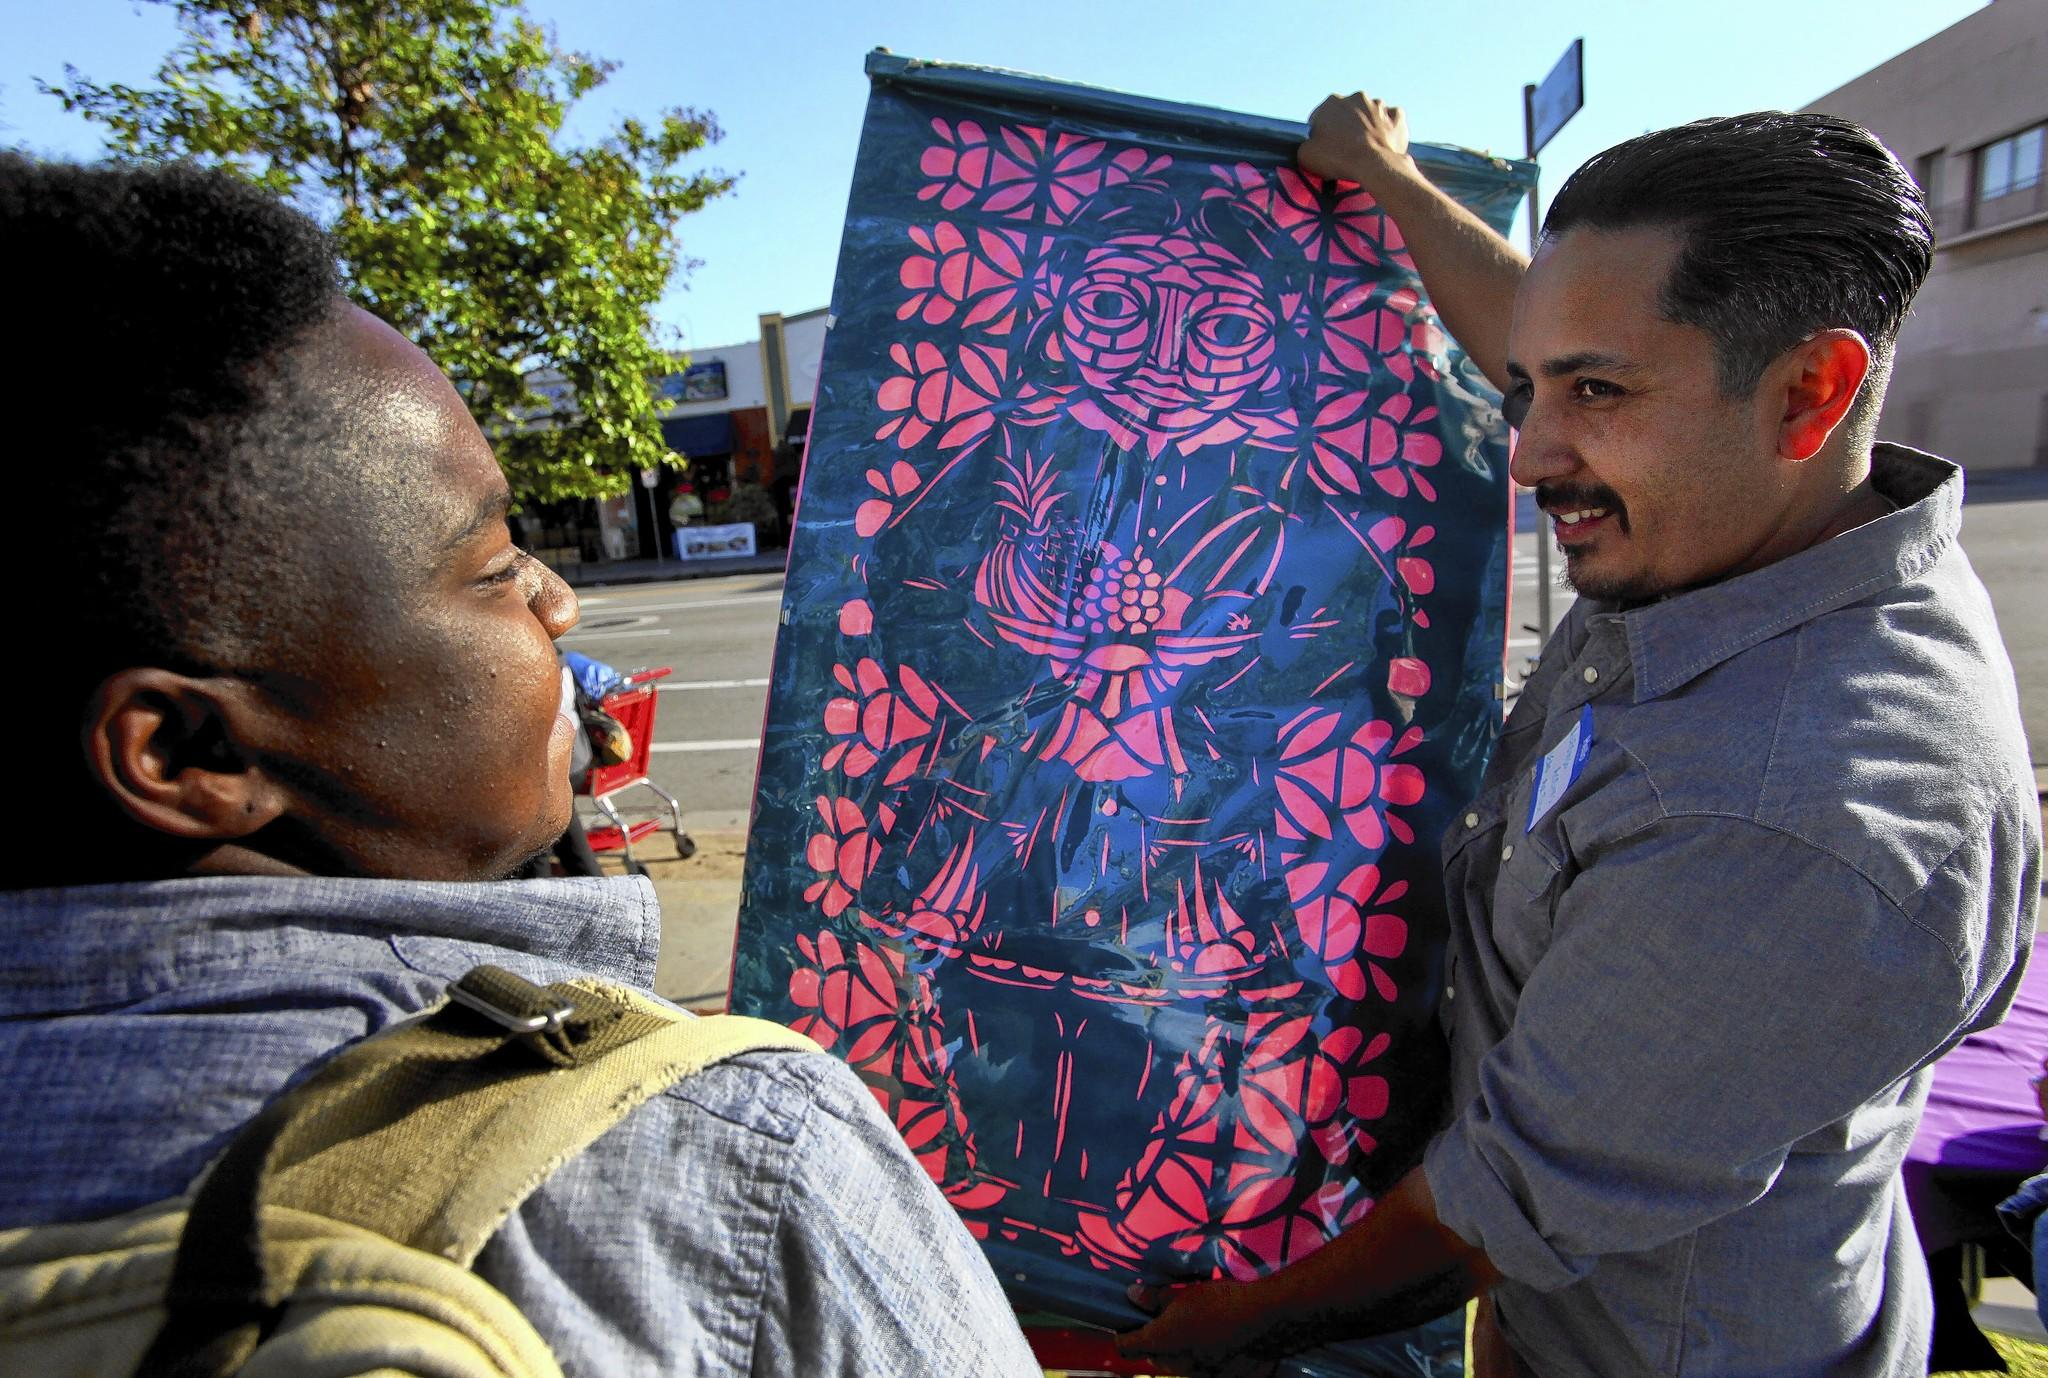 Alfonso Aceves, right, lead artist for L.A. Commons, holds up a papel picado, a traditional Mexican cutout. Students will create an art installation using papel picado bunting for MacArthur Park.